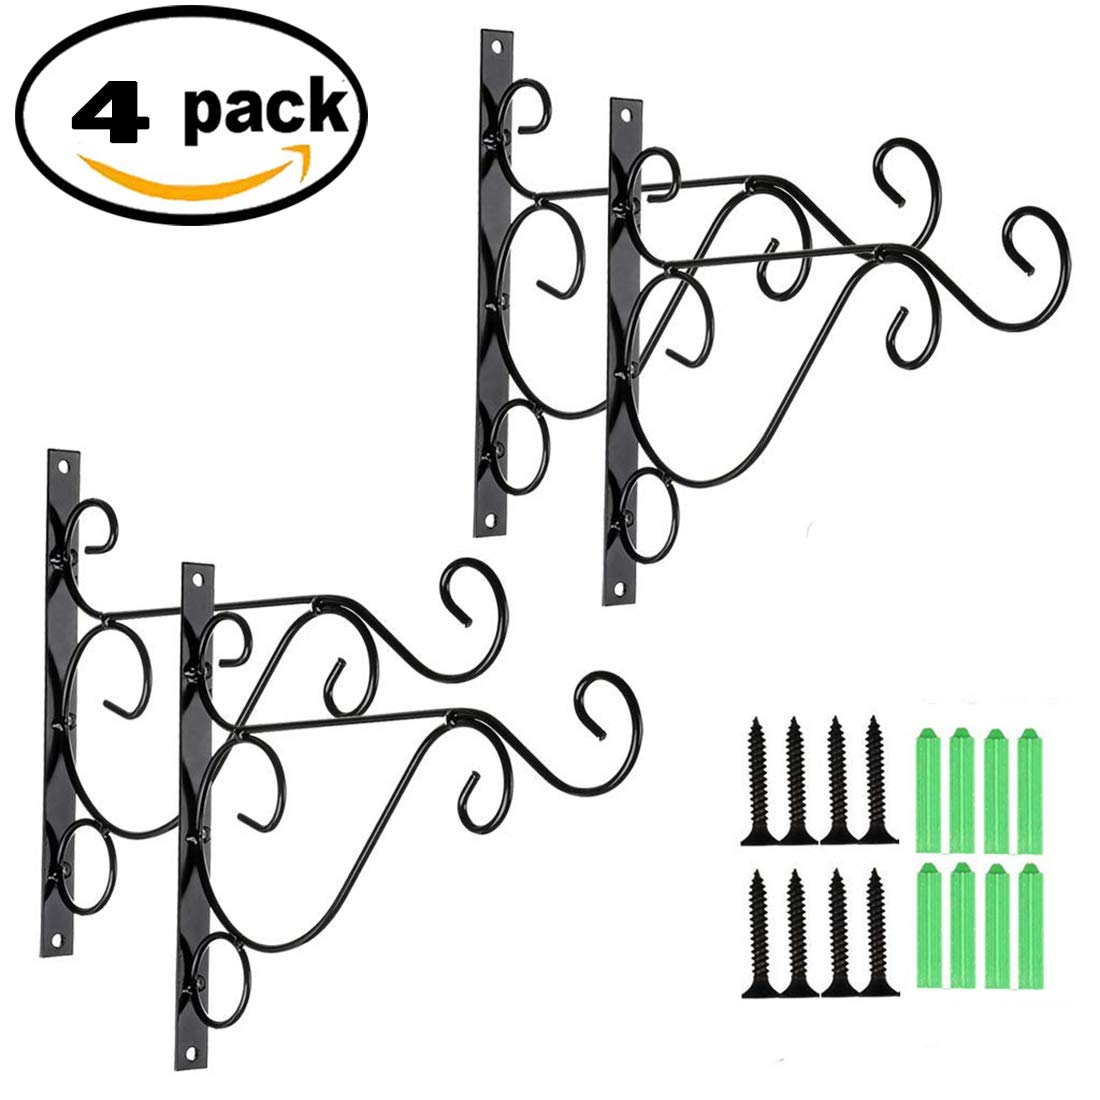 Originalidad 4 Pack 10'' Metal Hanging Basket Plant Hook Hangers, Plant/Wind Chime Wrought Iron Hanger Brackets for Hanging Basket Bracket/Hooks, Plant/Flower Hooks Hangers Brackets, Planter Hooks